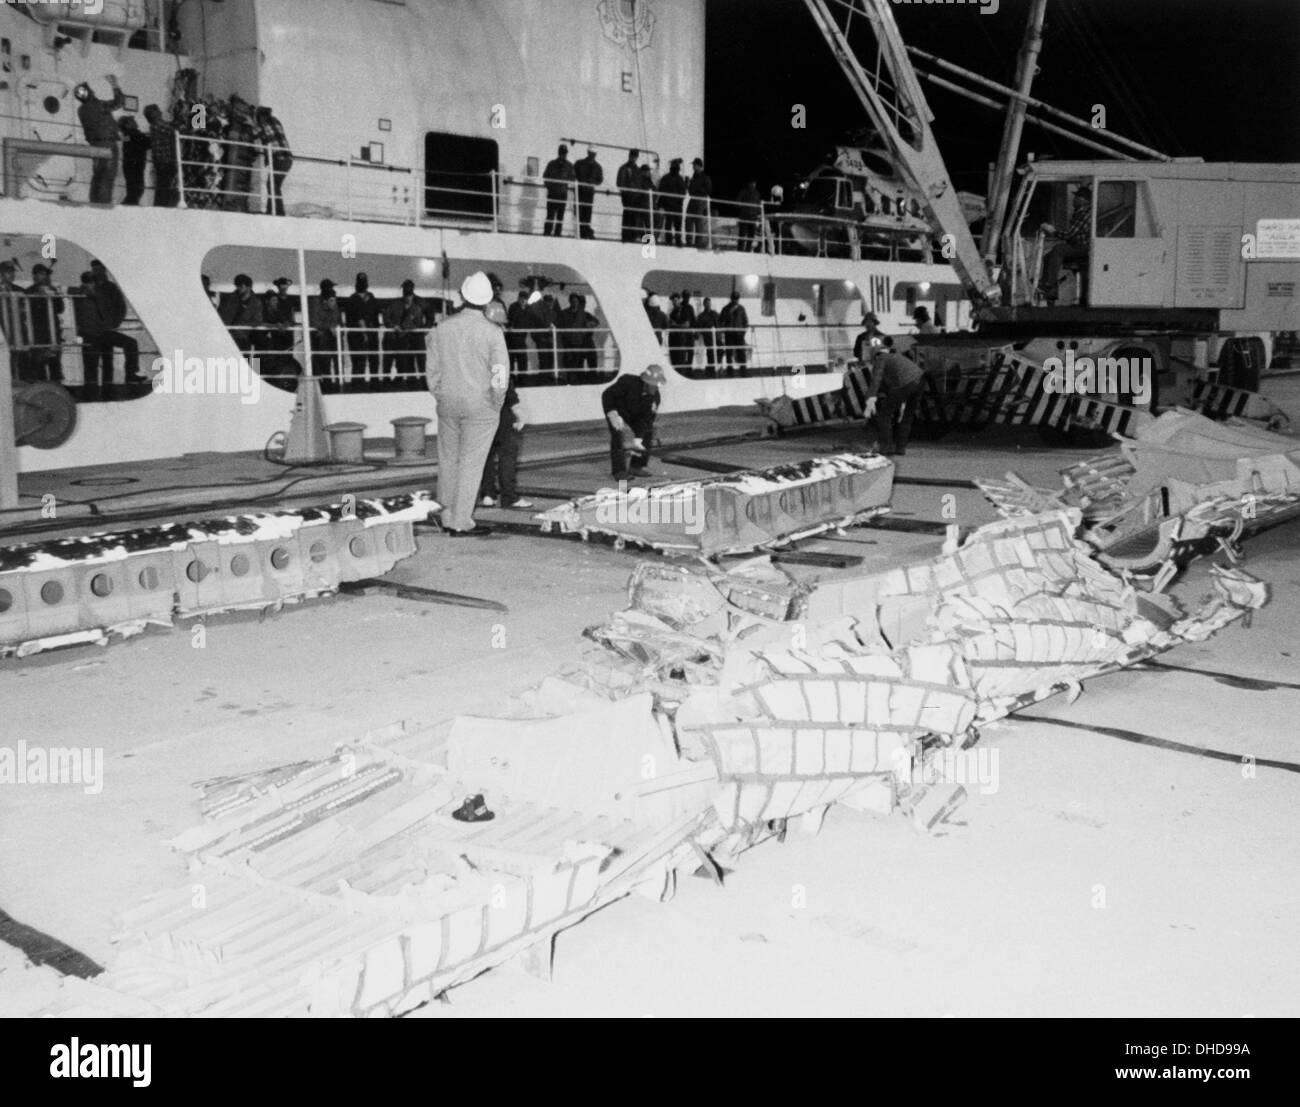 space shuttle challenger wreckage - photo #11